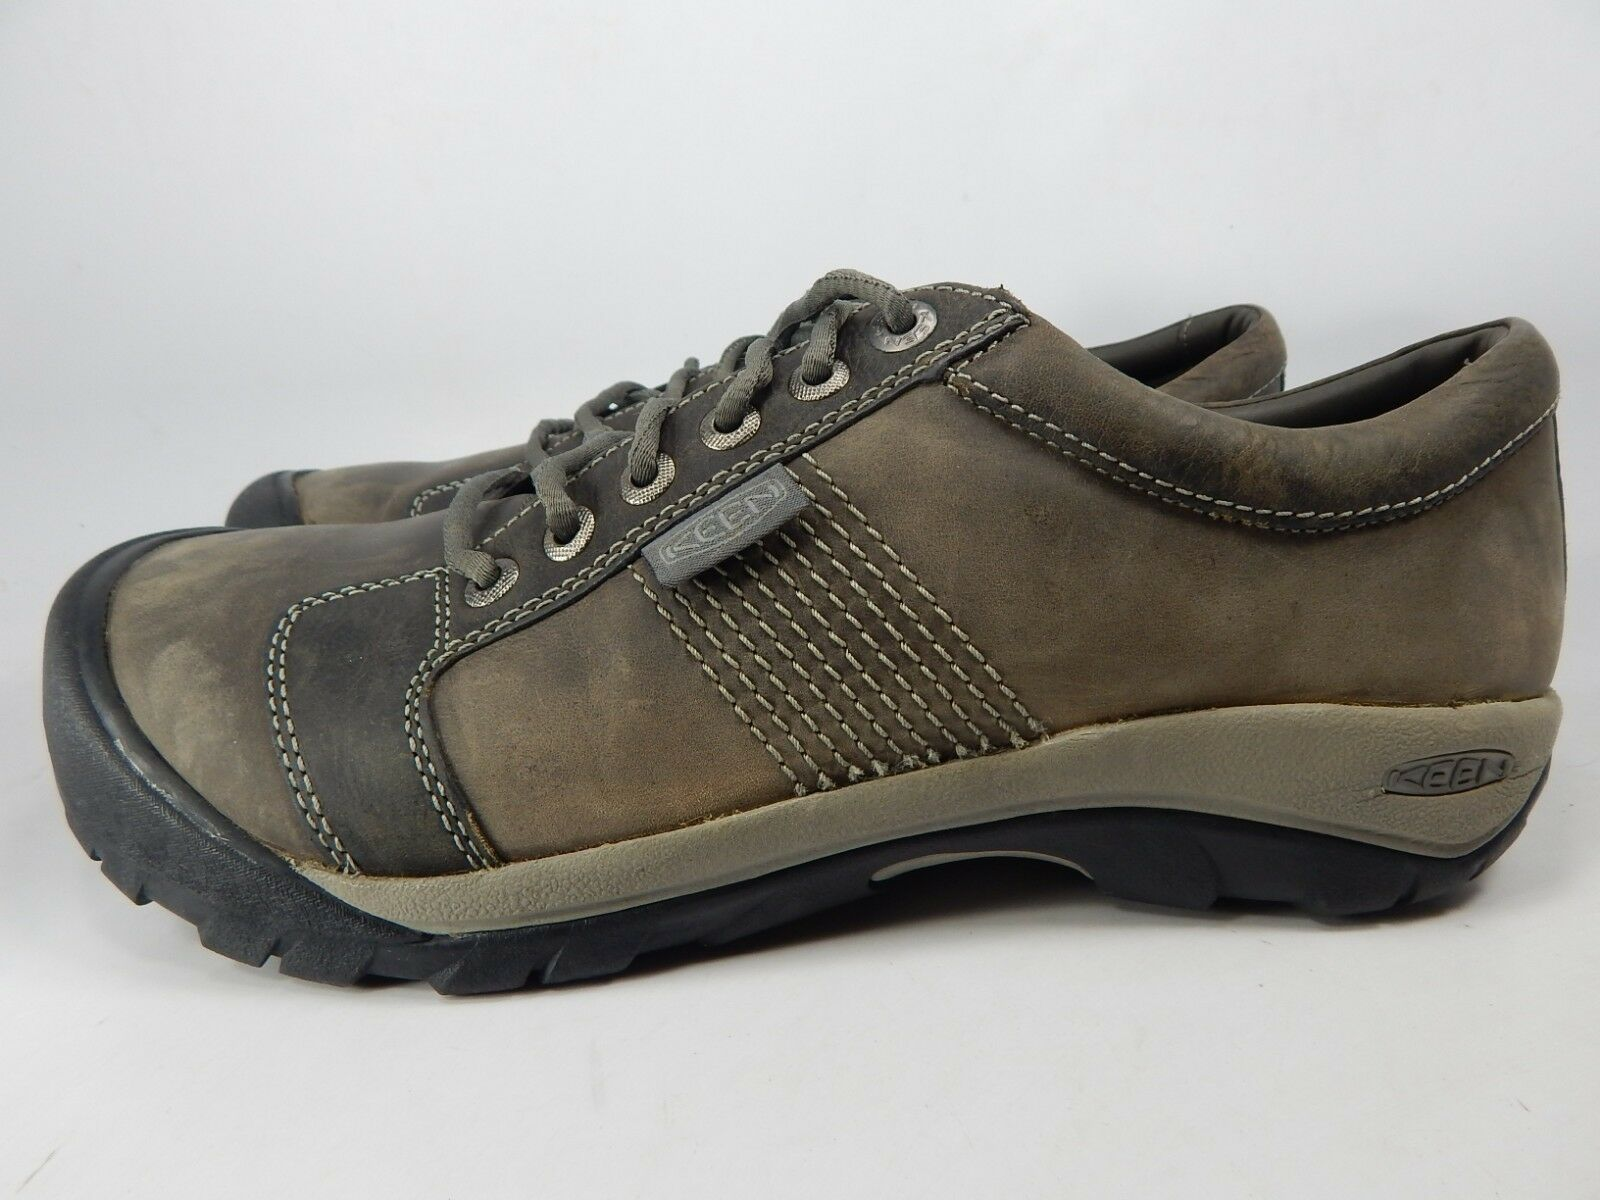 Keen Austin Sz US 12 M (D) EU 46 Men's Lace-Up Oxford Casual Shoes Gray 1016828